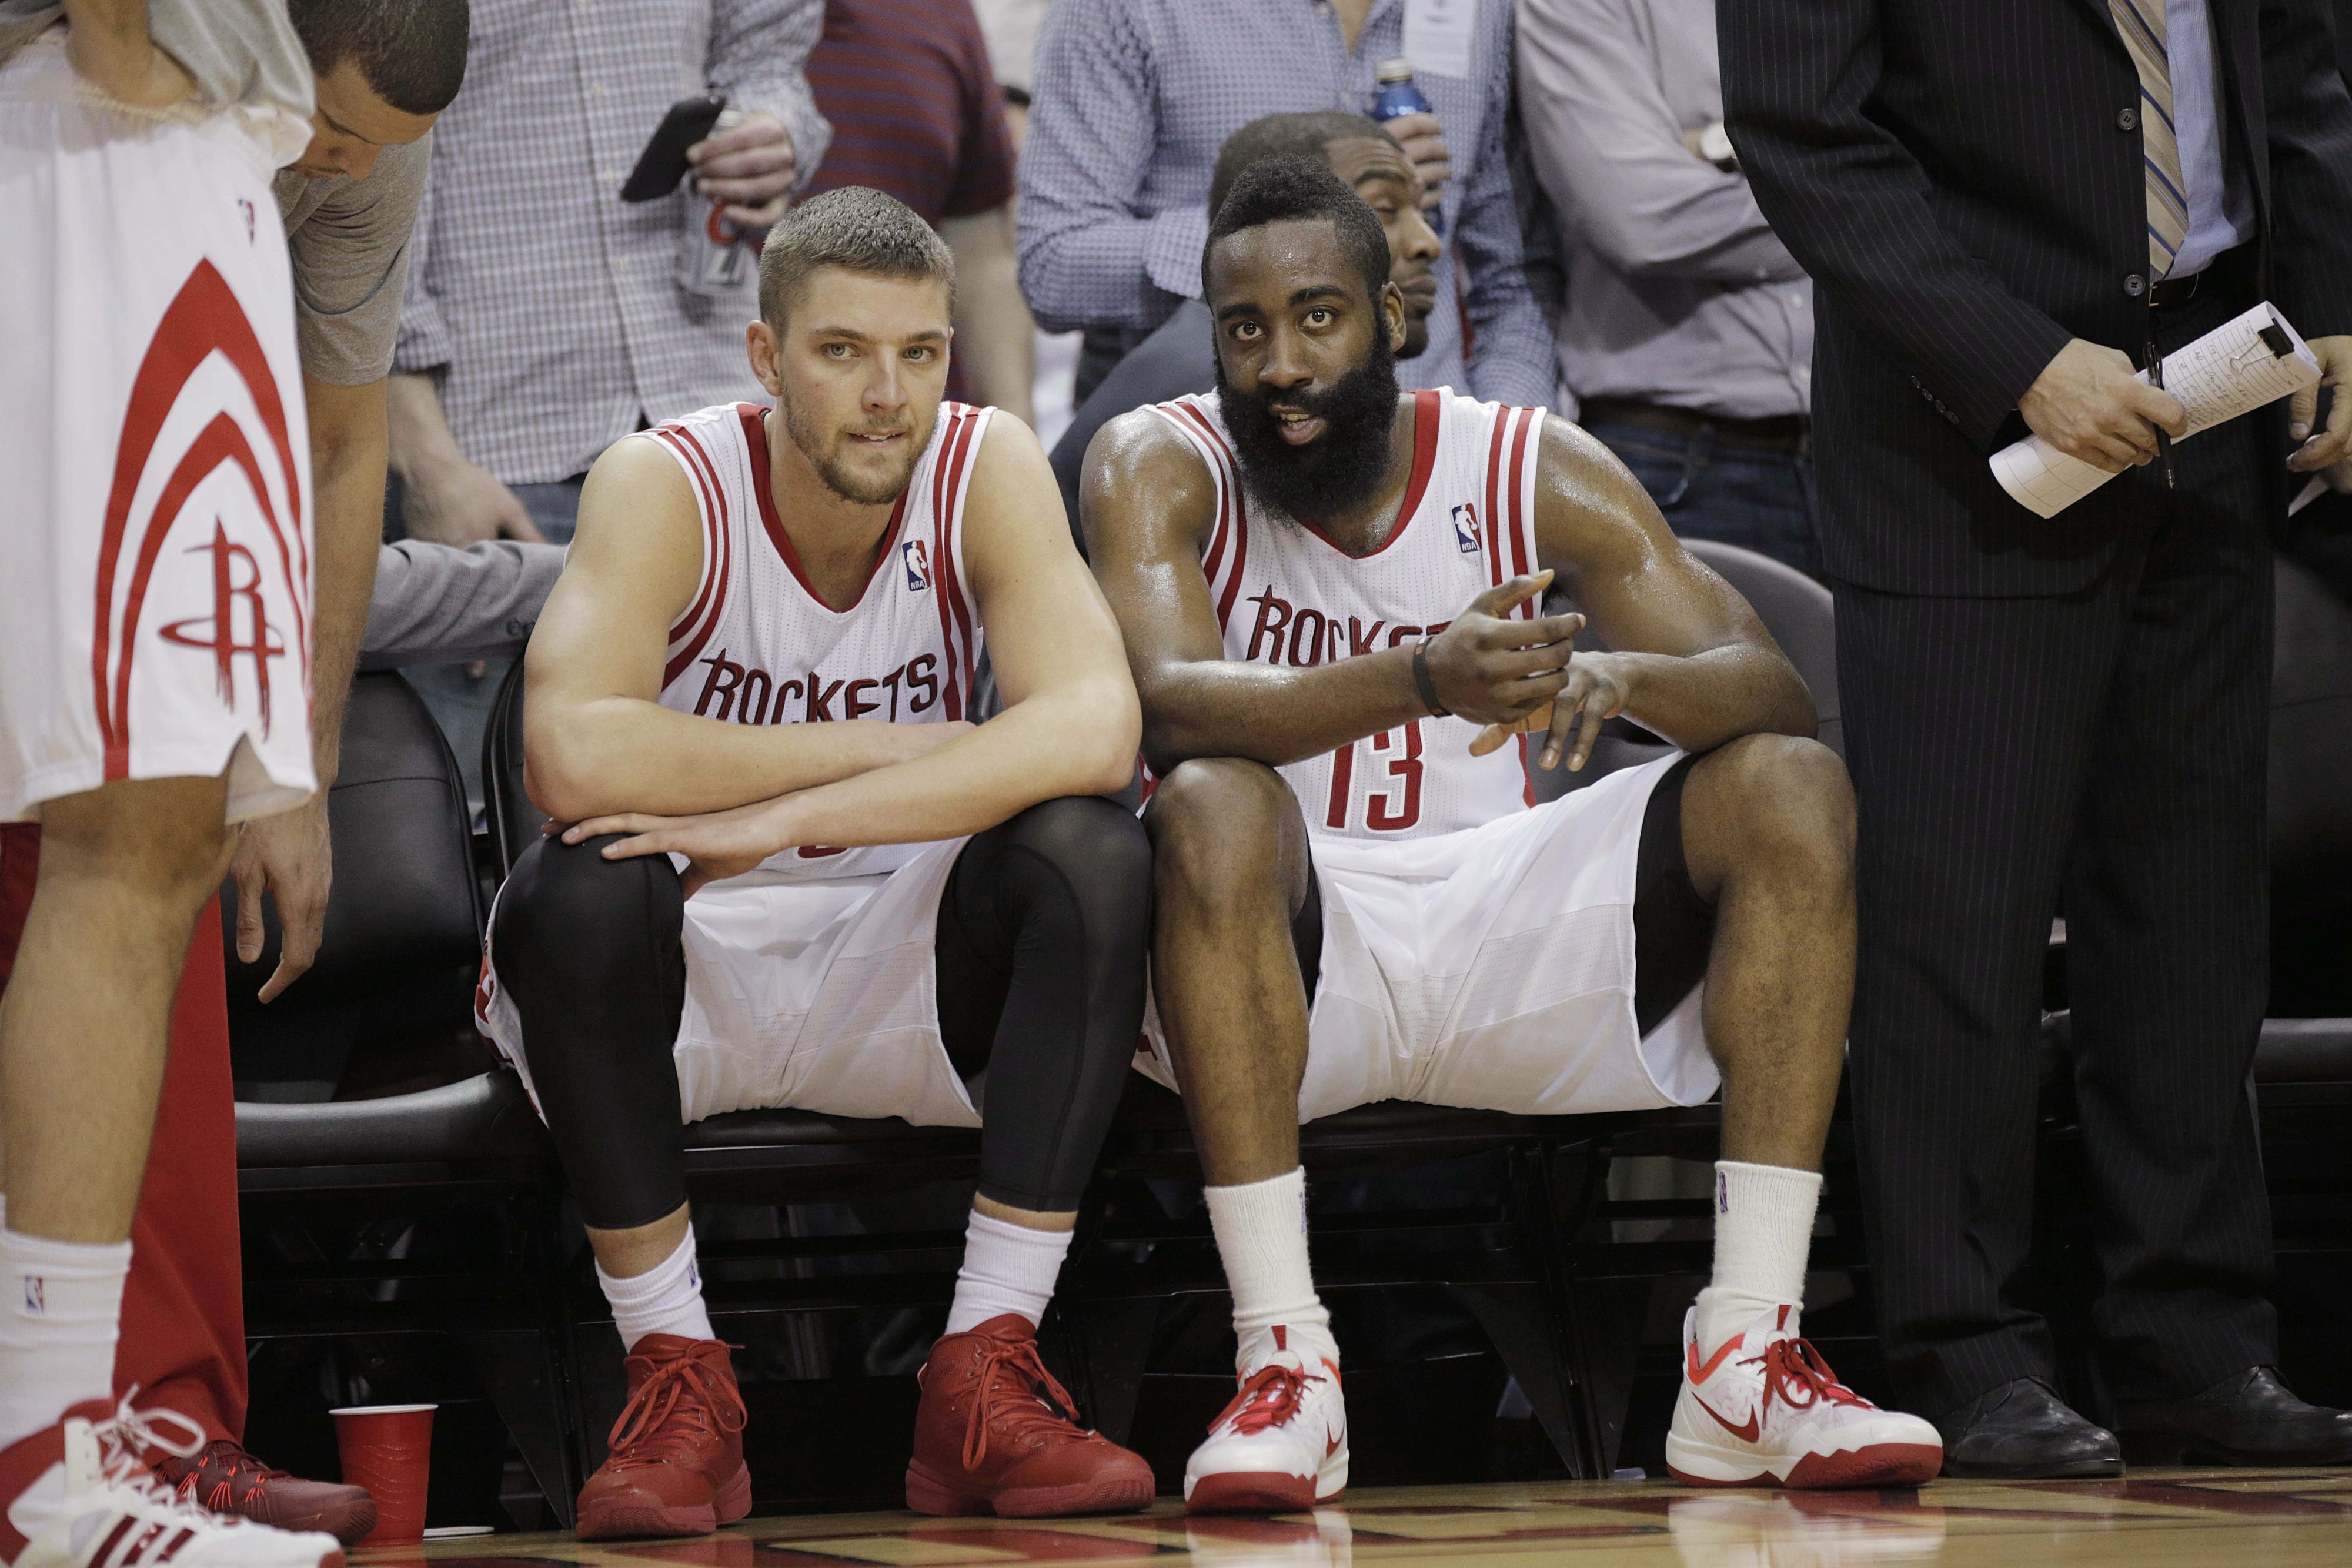 James Harden is right about Chandler Parsons